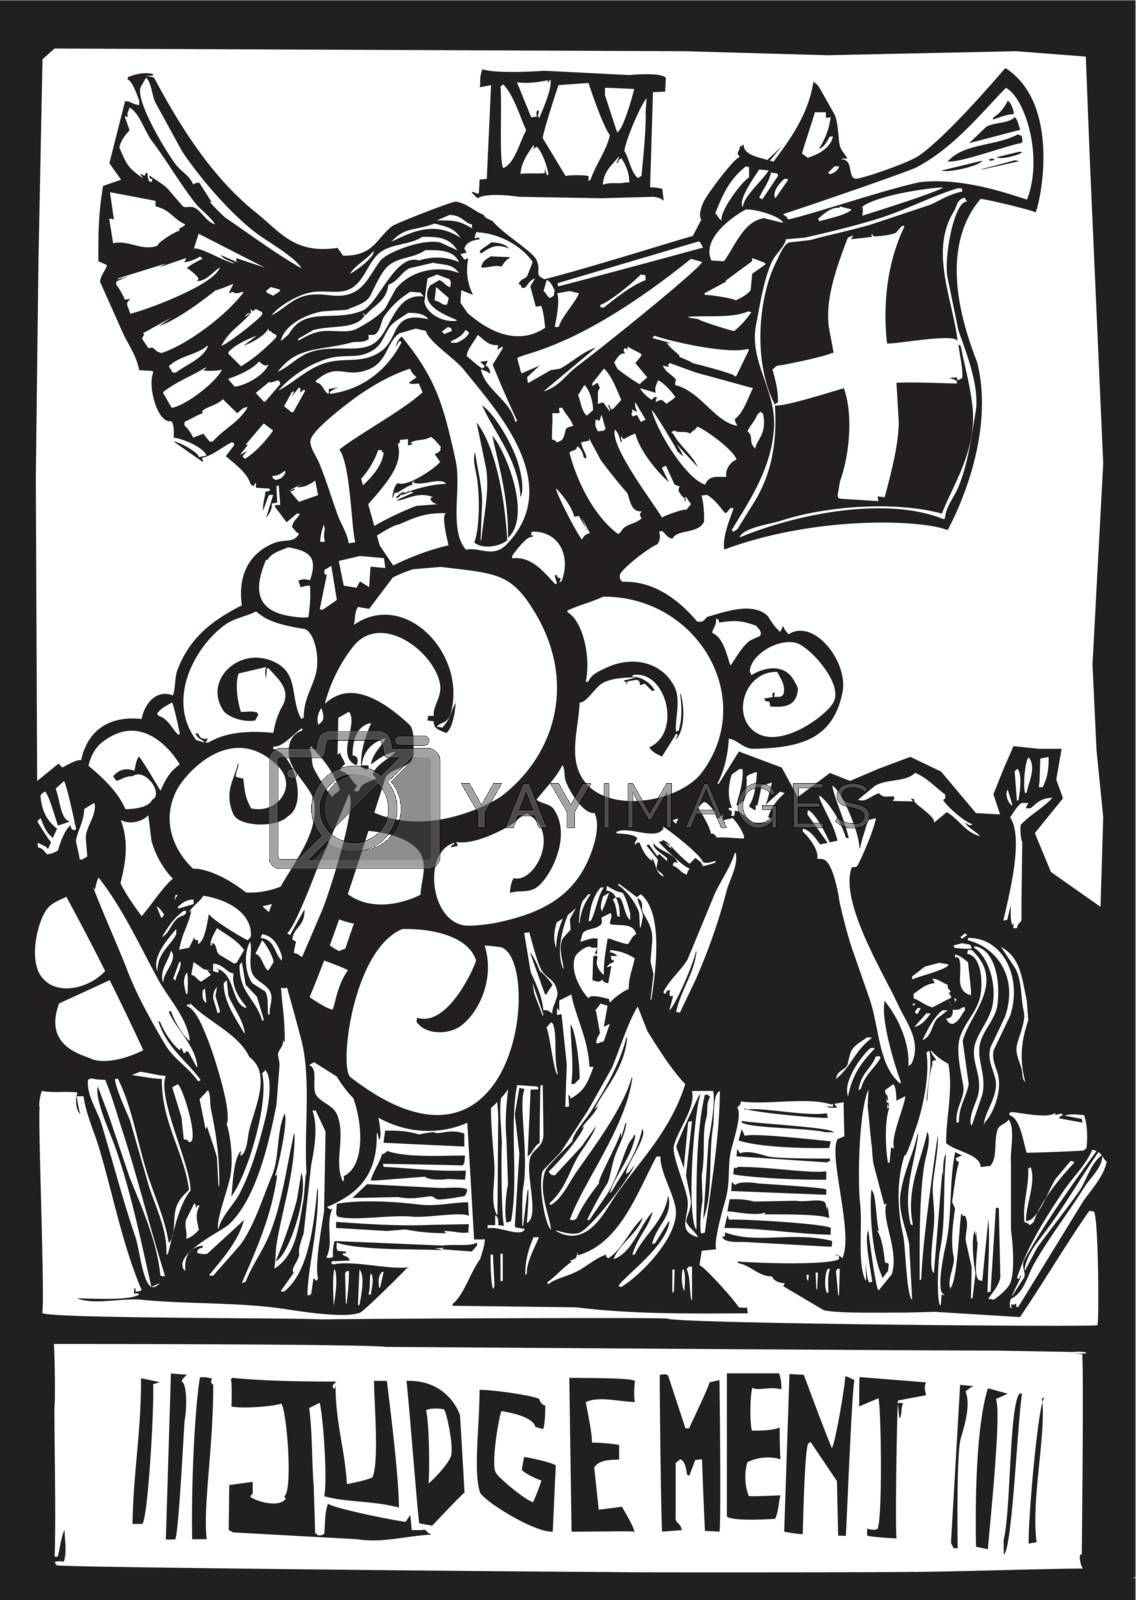 Woodcut expressionist style image for the Tarot card judgement.